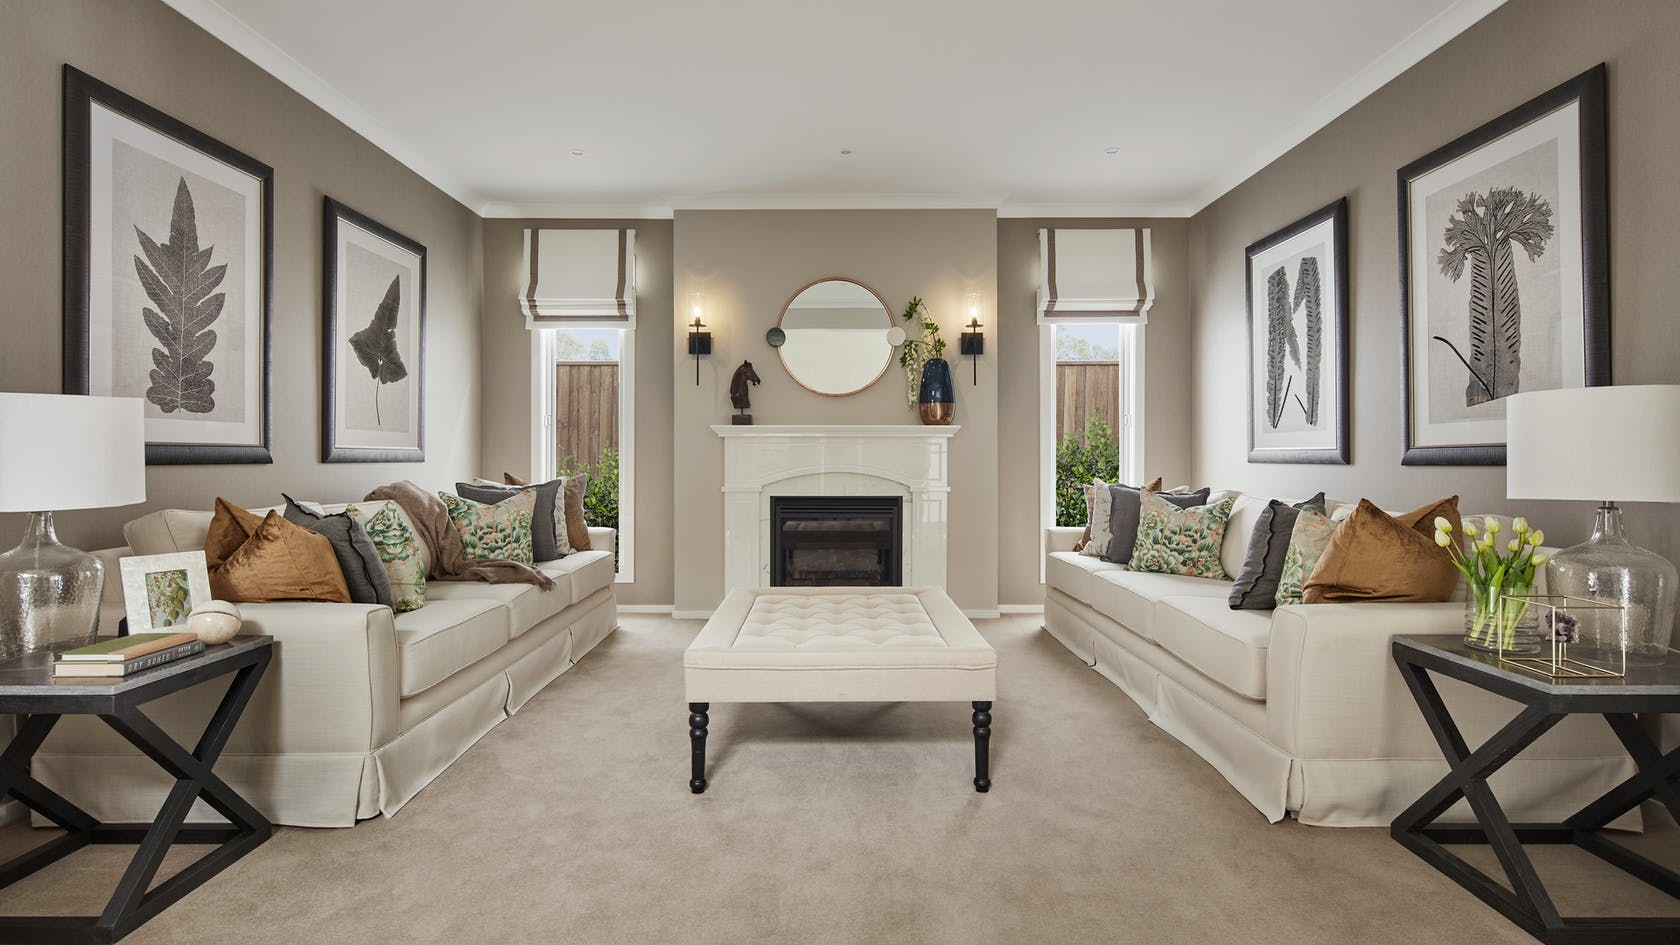 formal living room styled with provincial furniture and fireplace with round mirror above